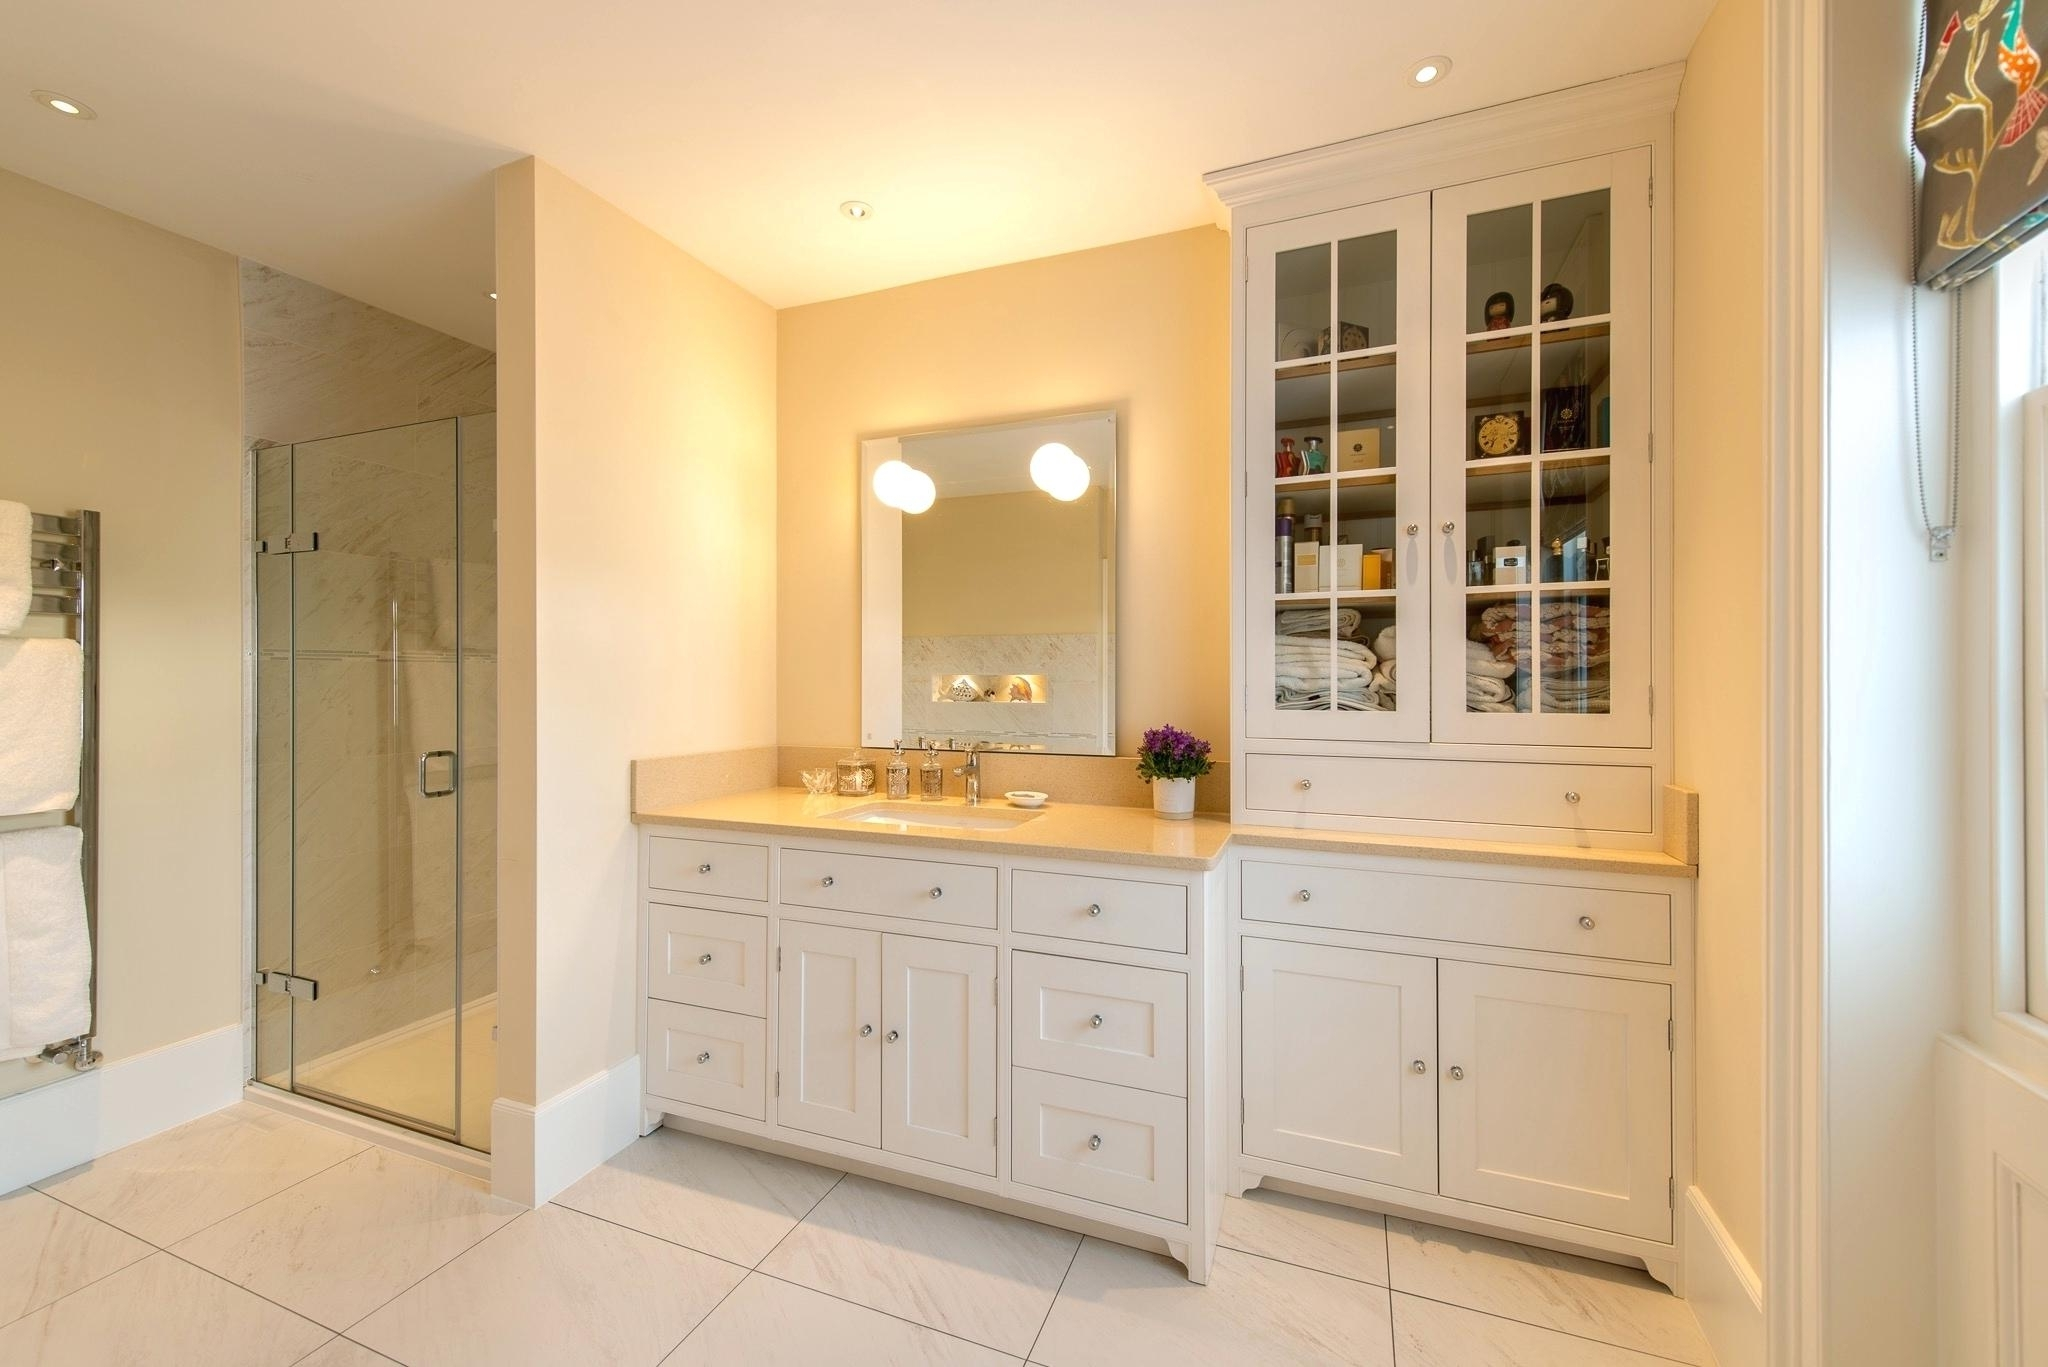 Made To Measure Cabinets Throughout Most Recent Bespoke Bathroom Cabinets Northern Ireland Made To Measure (View 10 of 15)